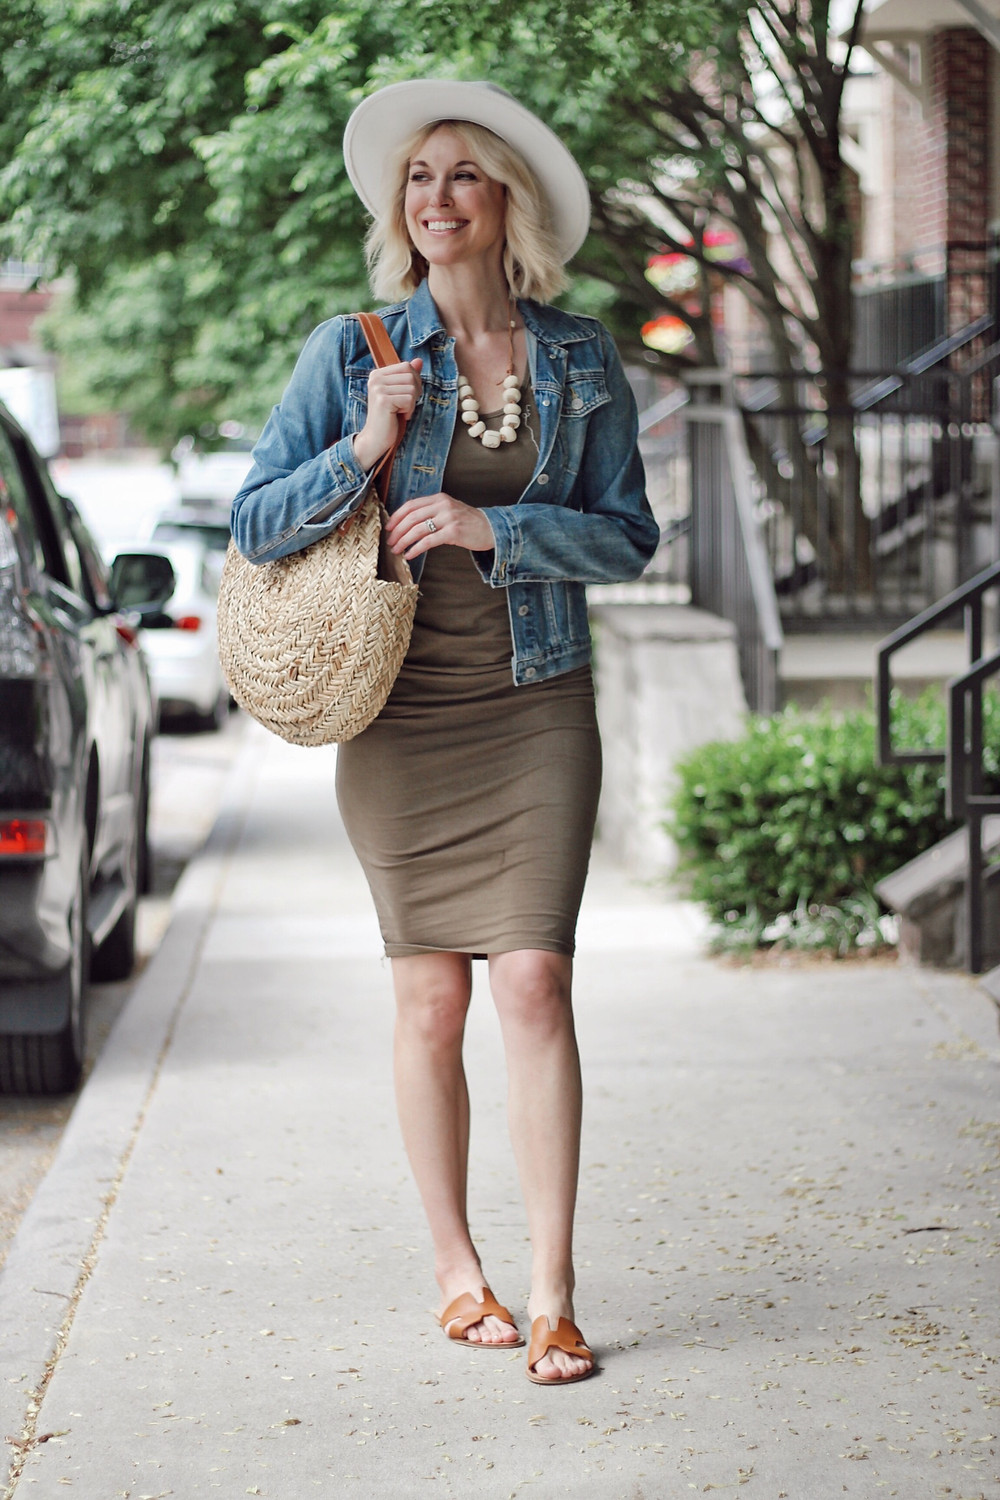 Womens wears spring outfit of olive tank dress, denim jacket, and round straw bag